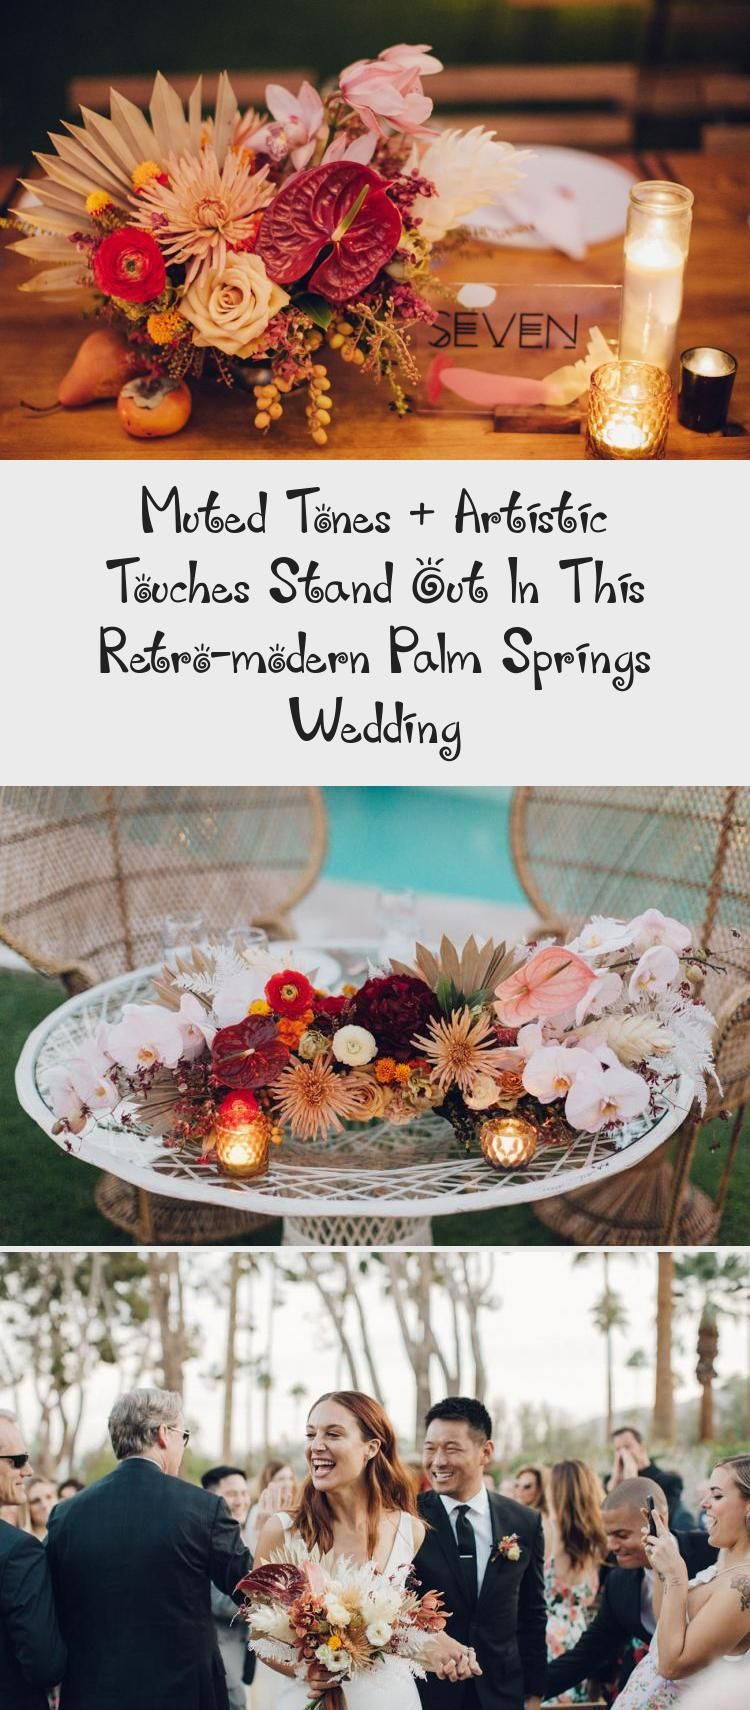 Muted Tones Artistic Touches Stand Out In This Retro Modern Palm Springs Wedding Green Wedding Shoes Weddin In 2020 Palm Springs Wedding Palm Springs Retro Modern